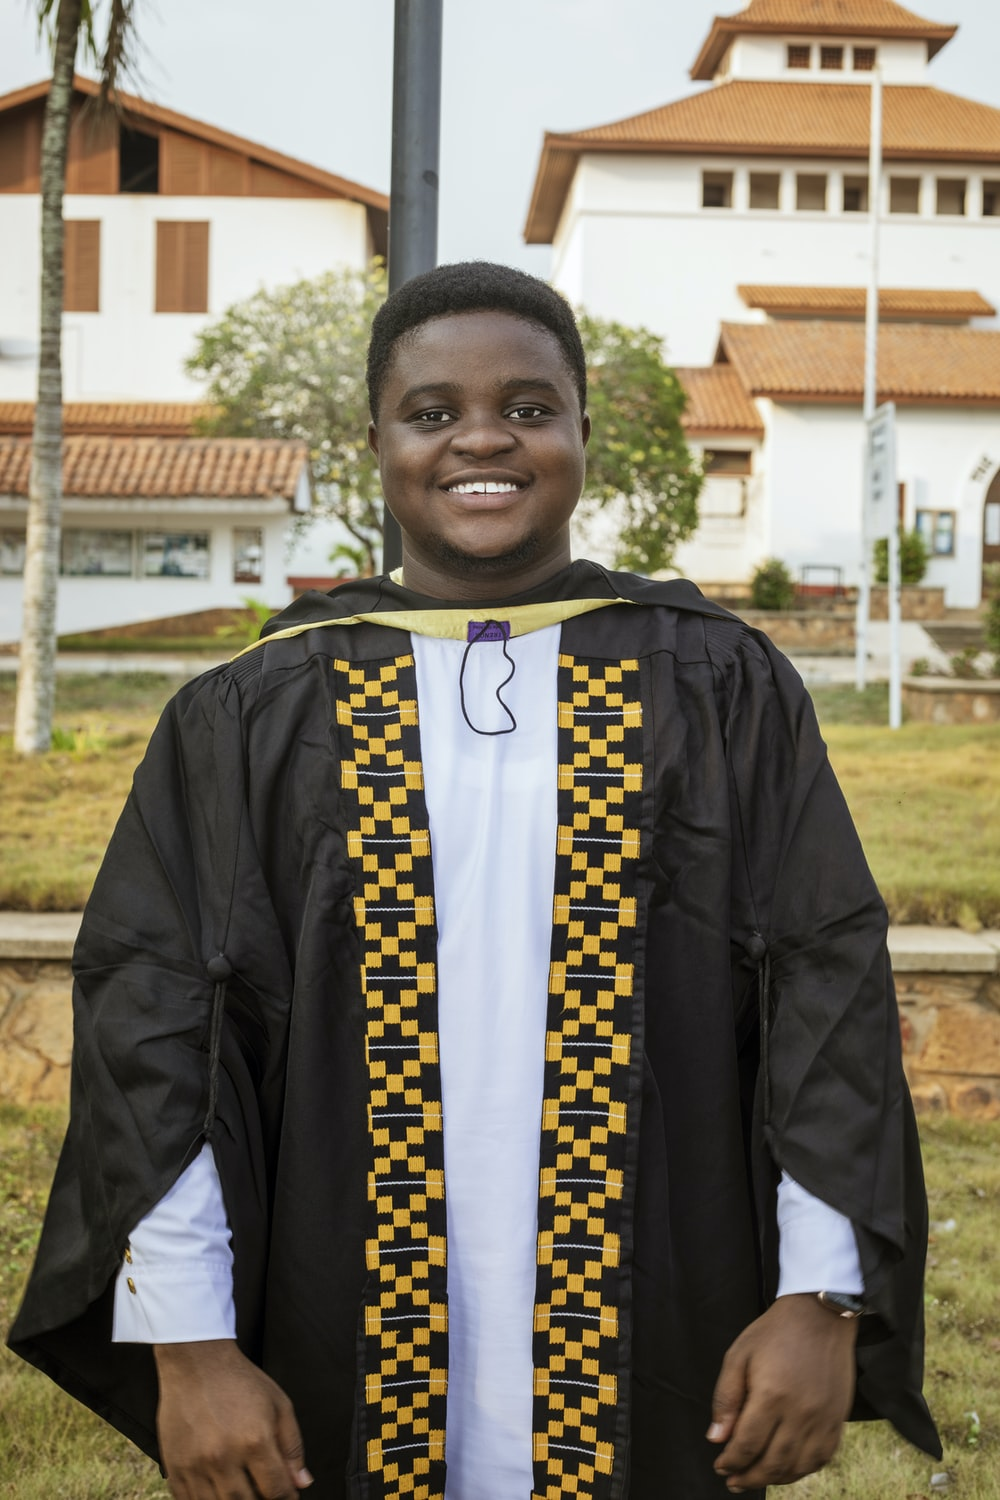 boy in black and yellow academic dress